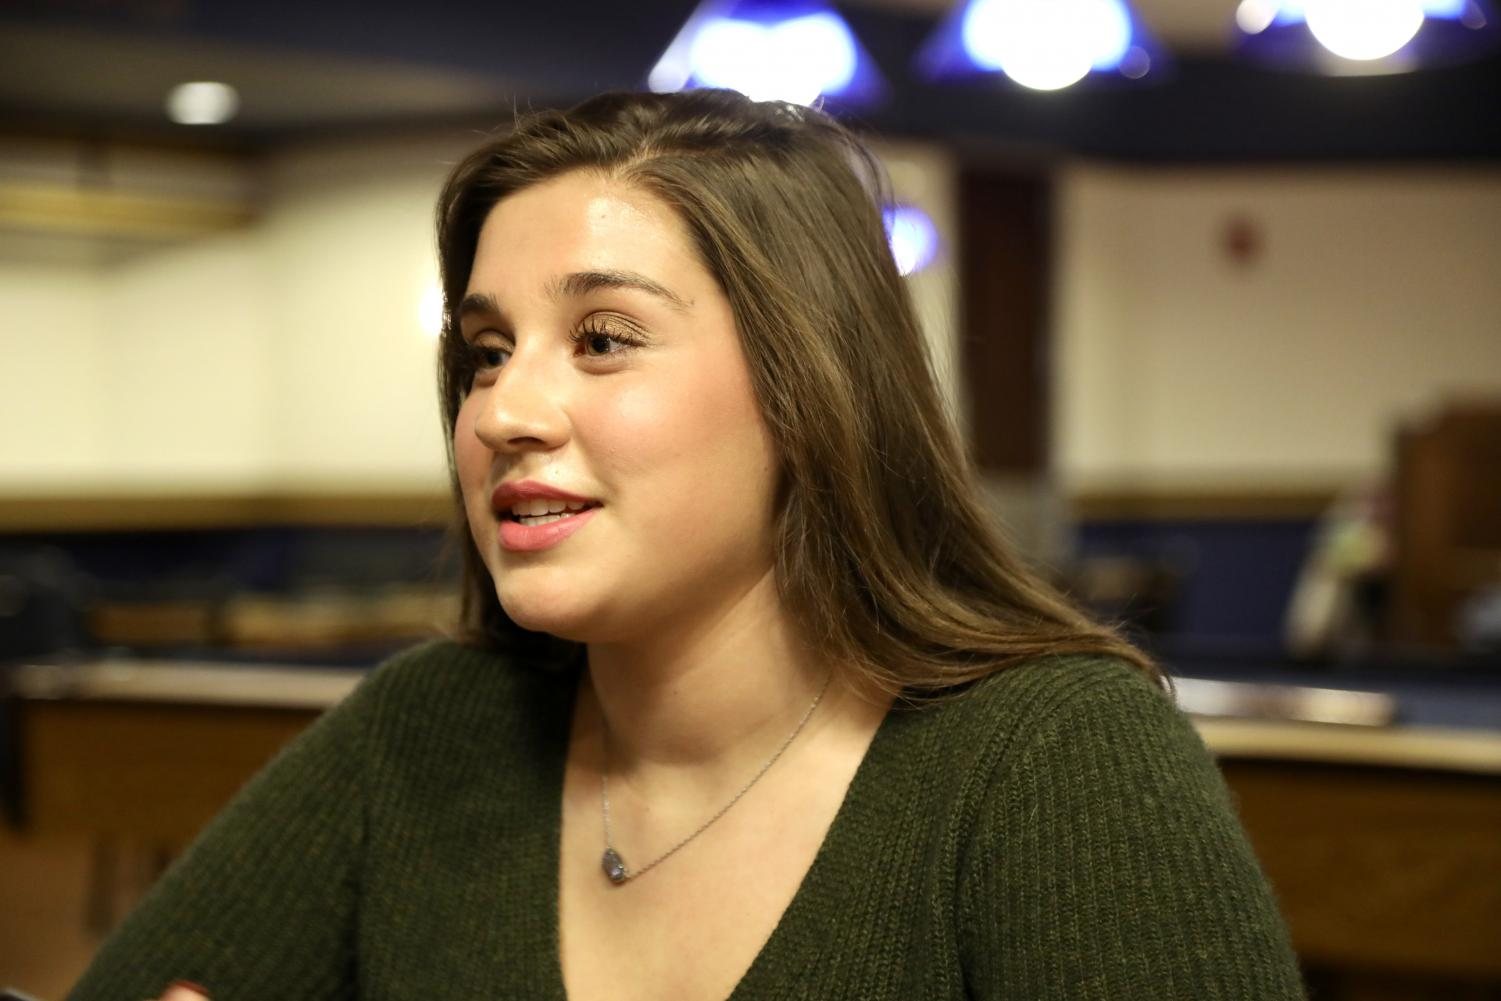 Nichole Fernandez-Jurado was one of the three people who helped create the College of Communication student council.